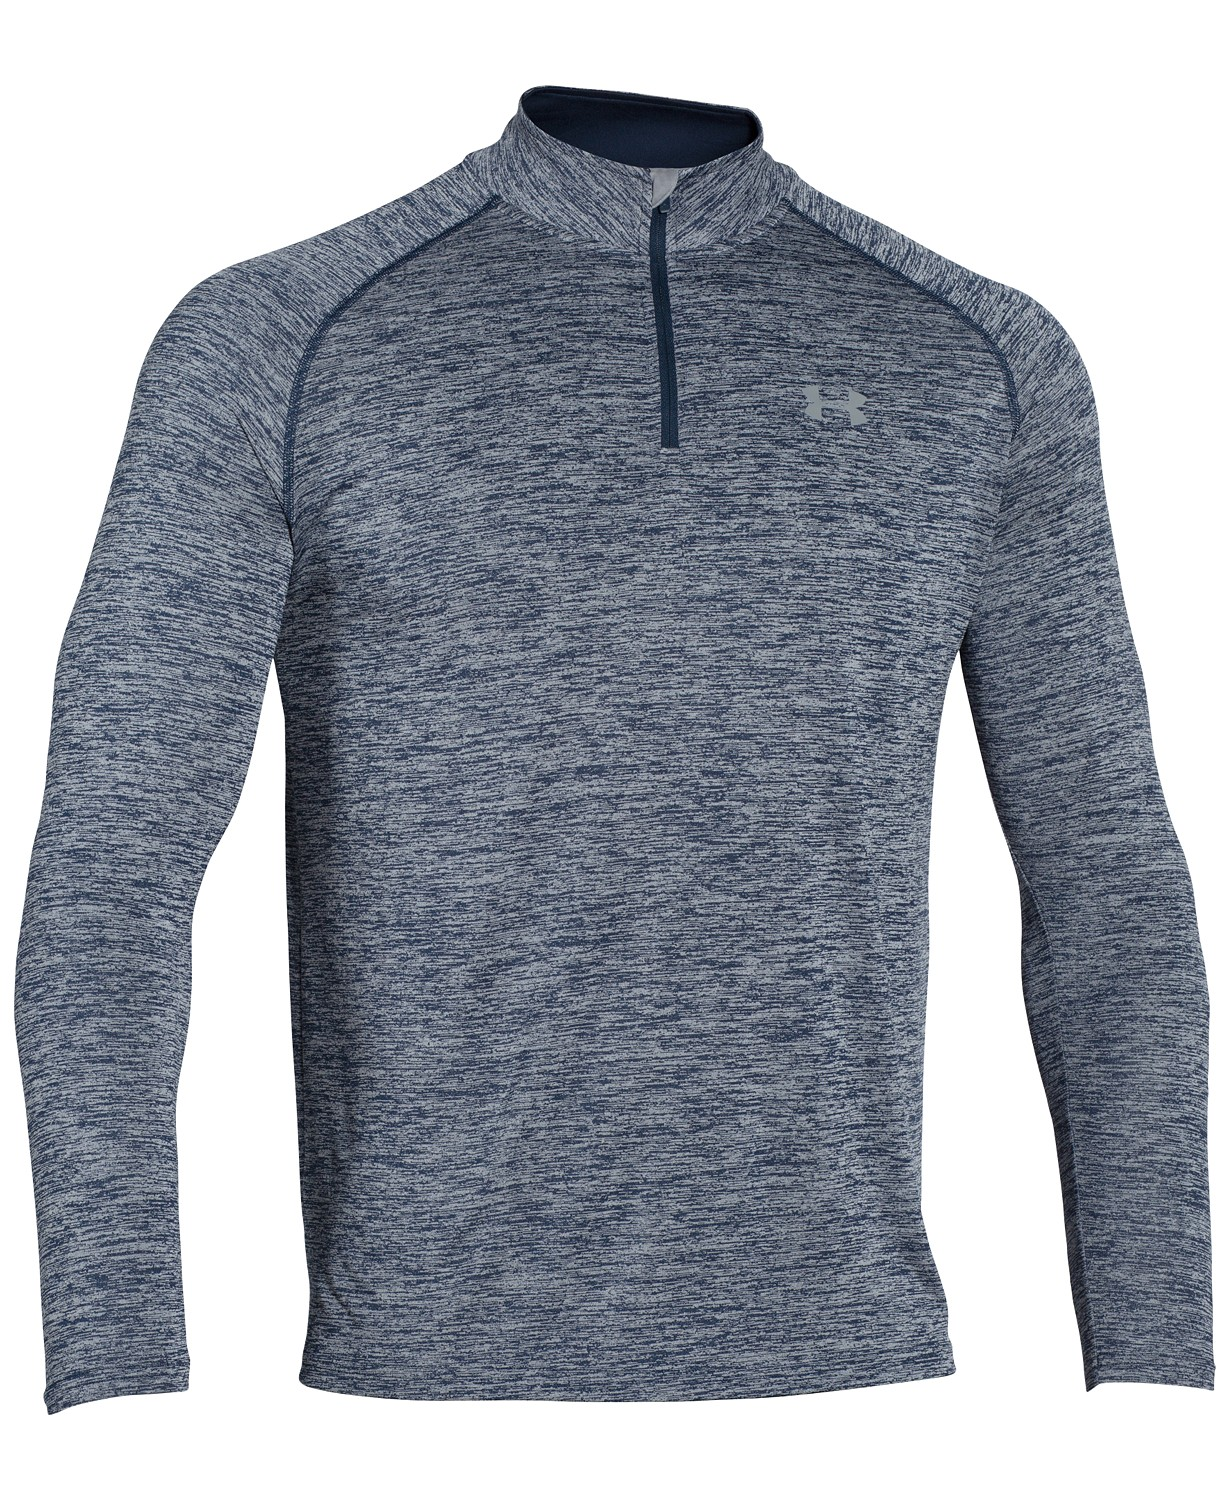 Under Armour Mens Tech Quarter-Zip Pullover